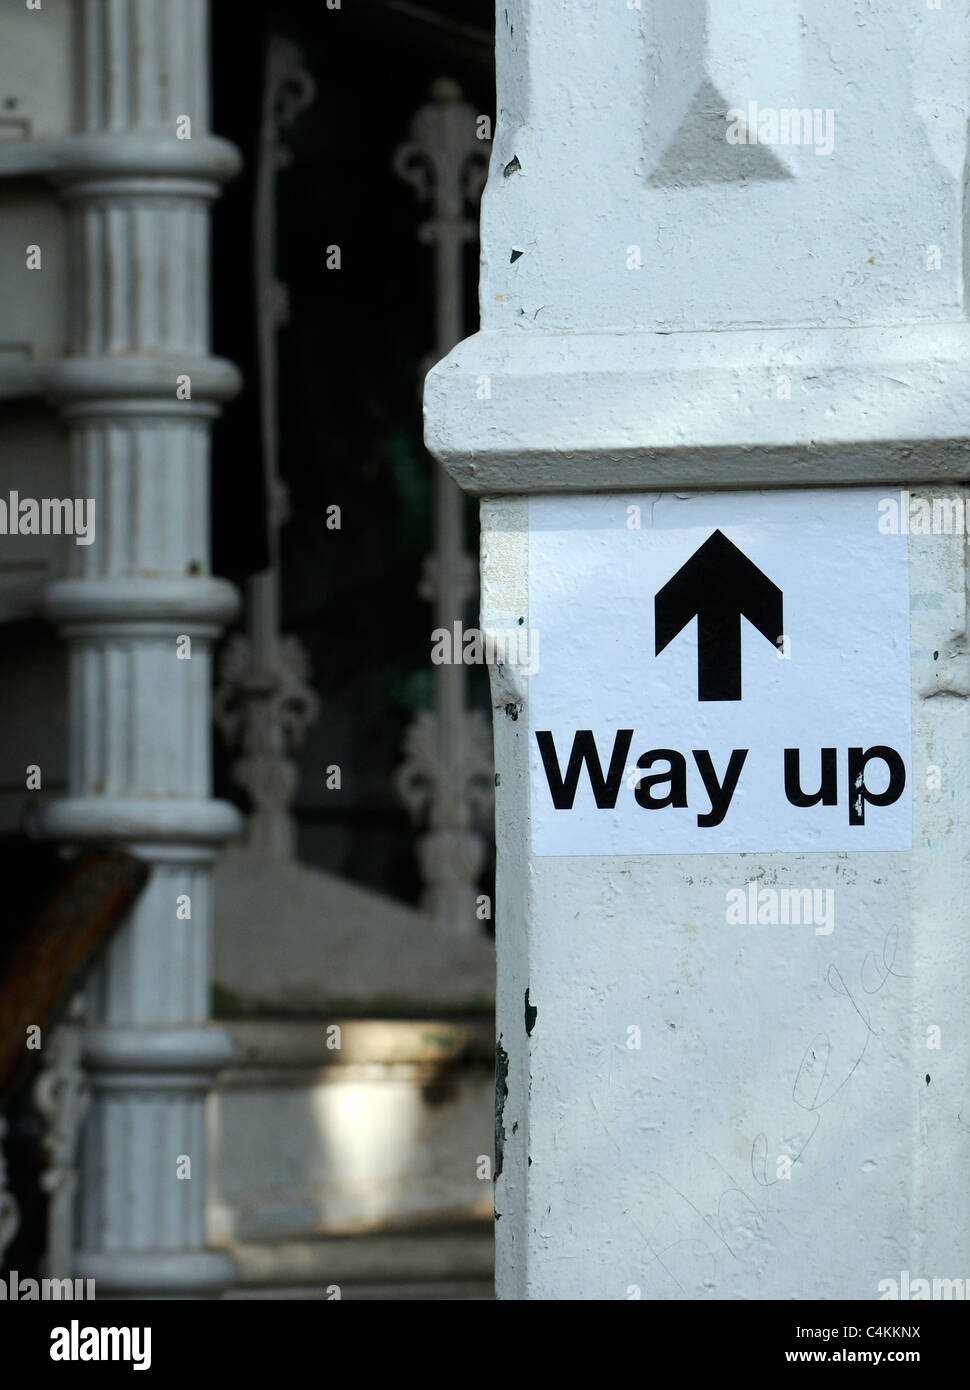 A way up sign points upwards by a metal spiral staircase. - Stock Image